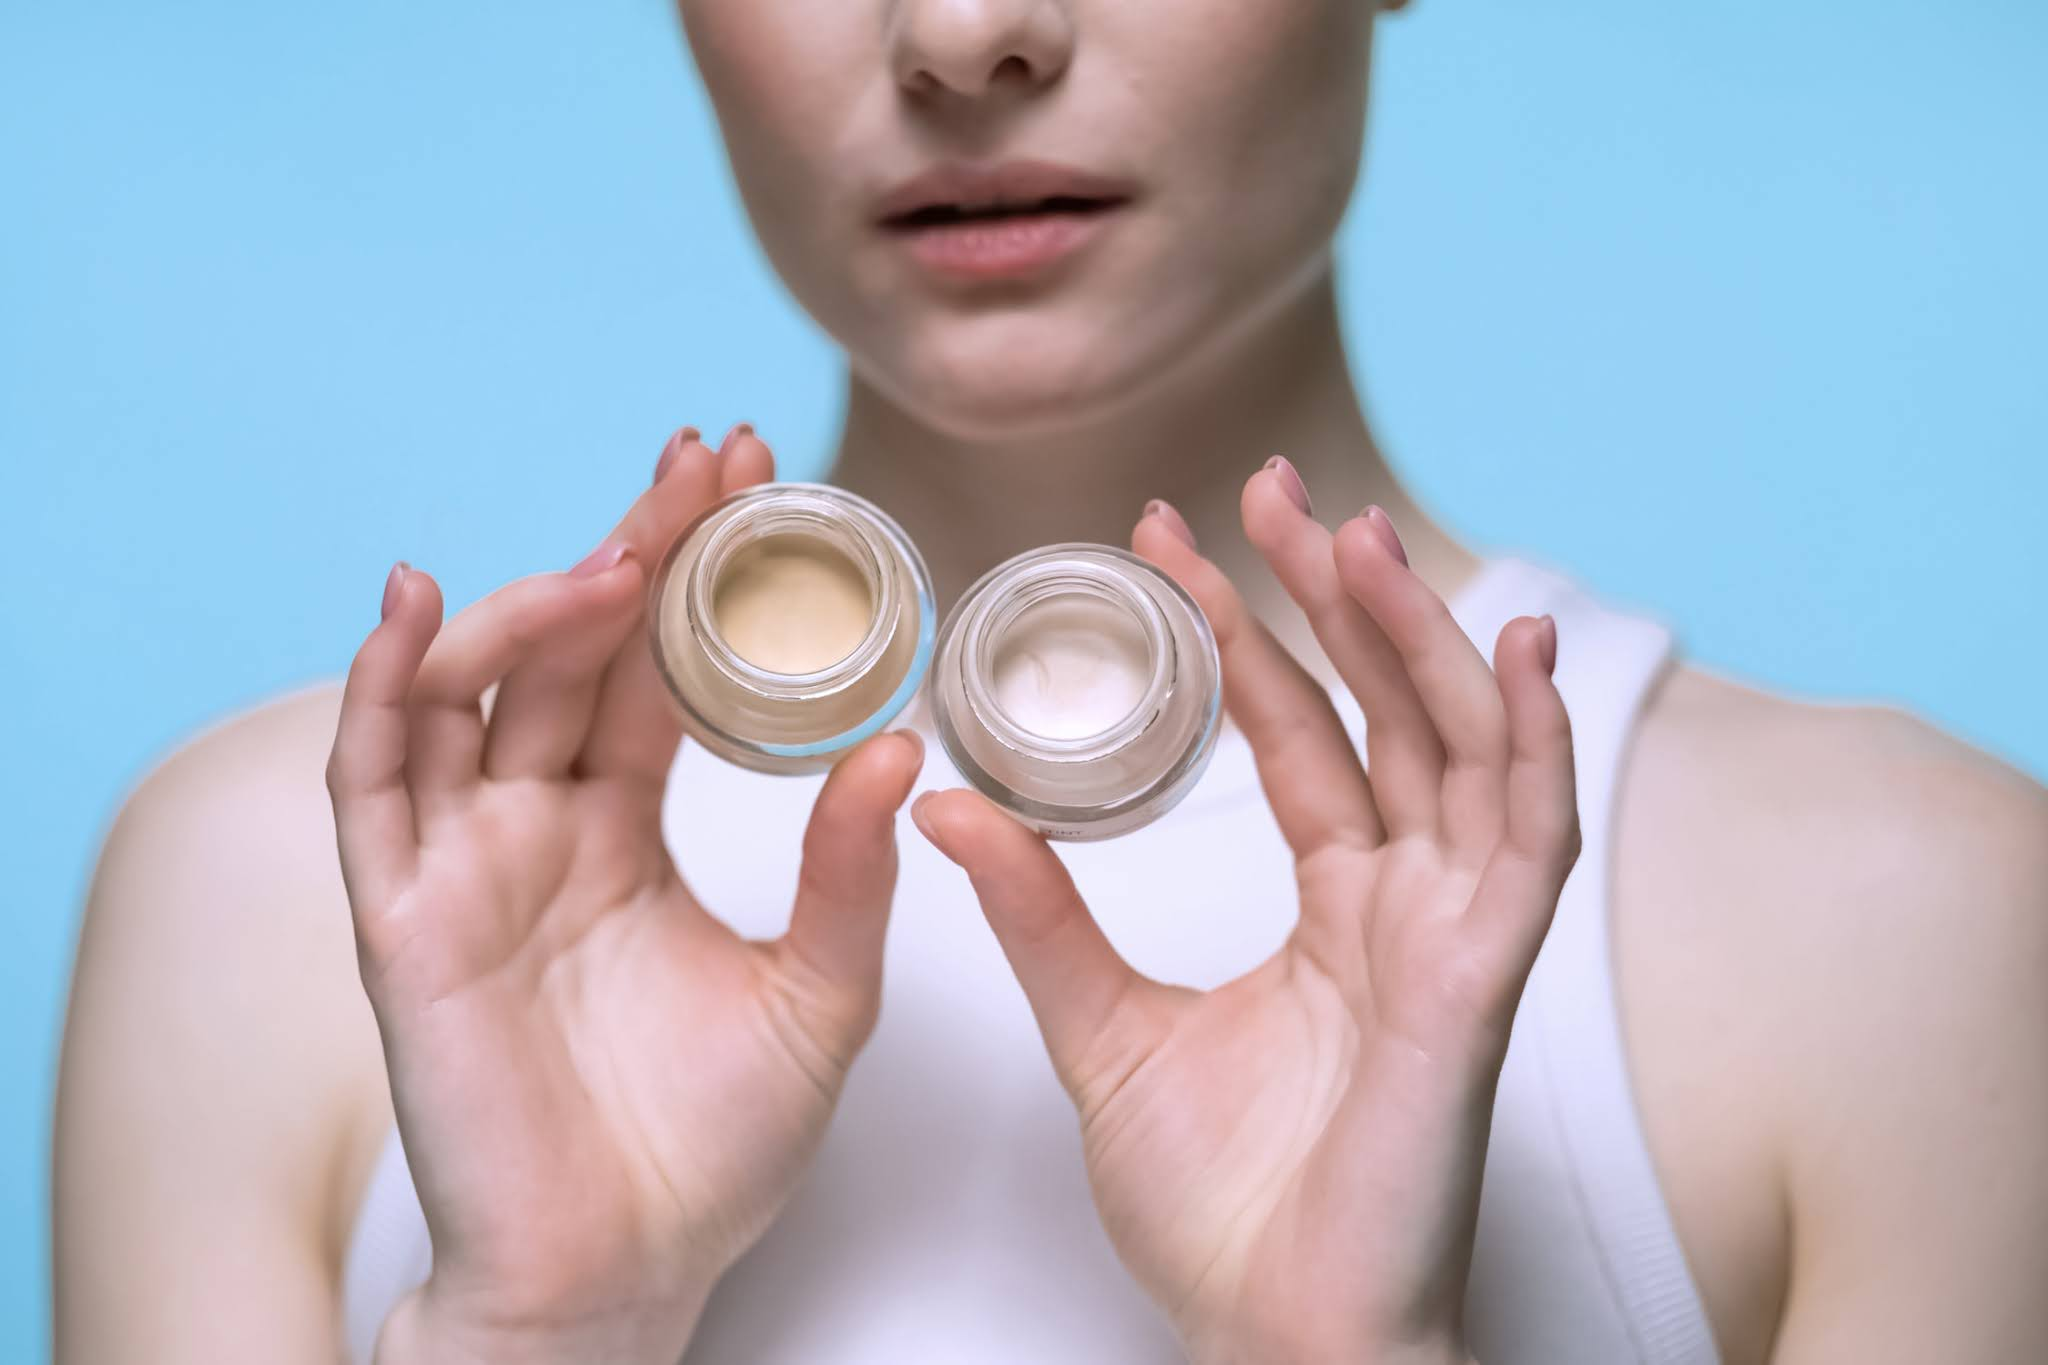 woman is holding two makeup products in her hands and showing them to the camera